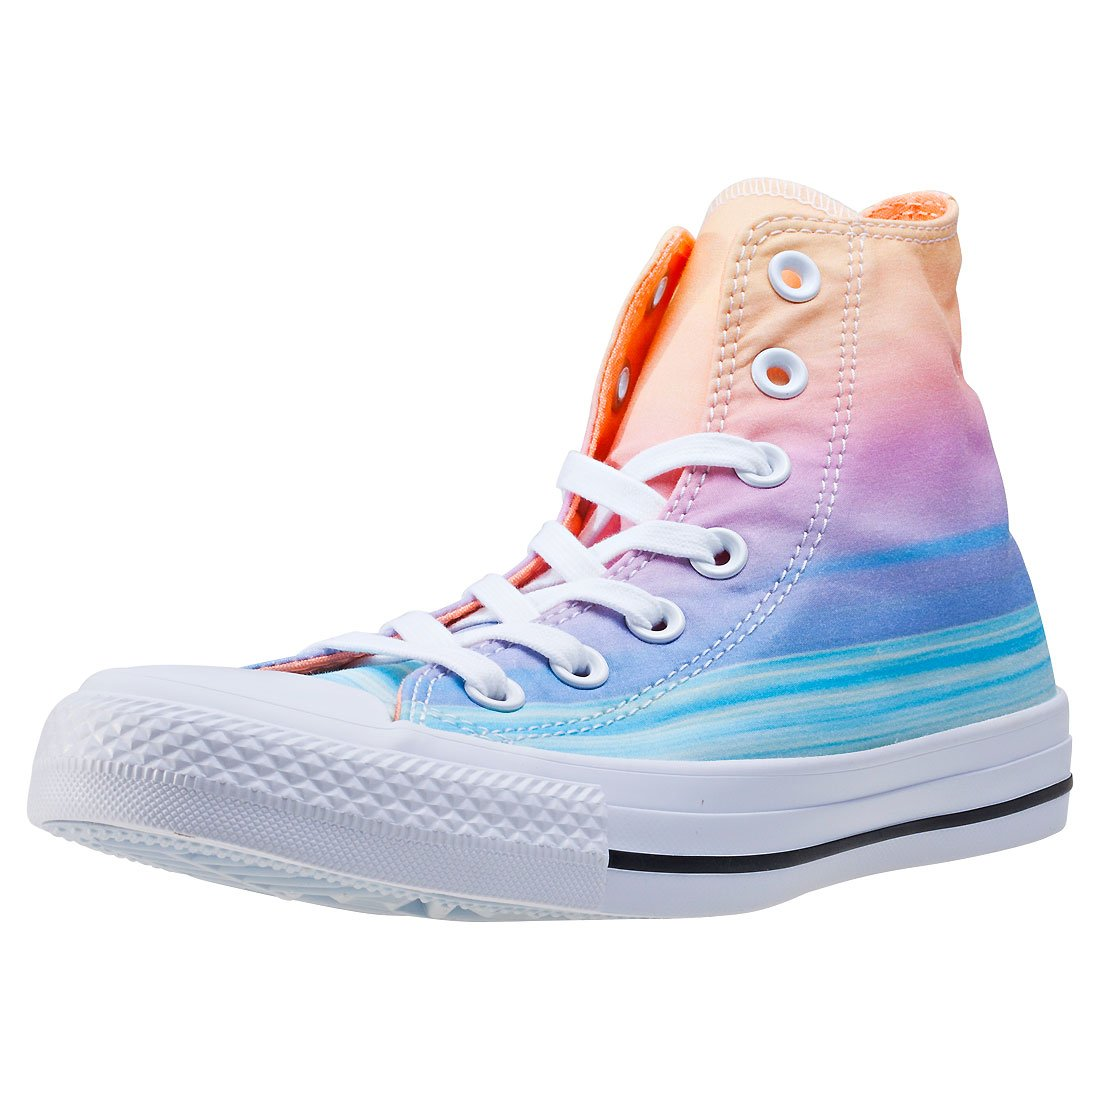 Converse Ctas Baskets Core Hi, Baskets mode Converse mode mixte adulte 1e0b1e3 - epictionpvp.space